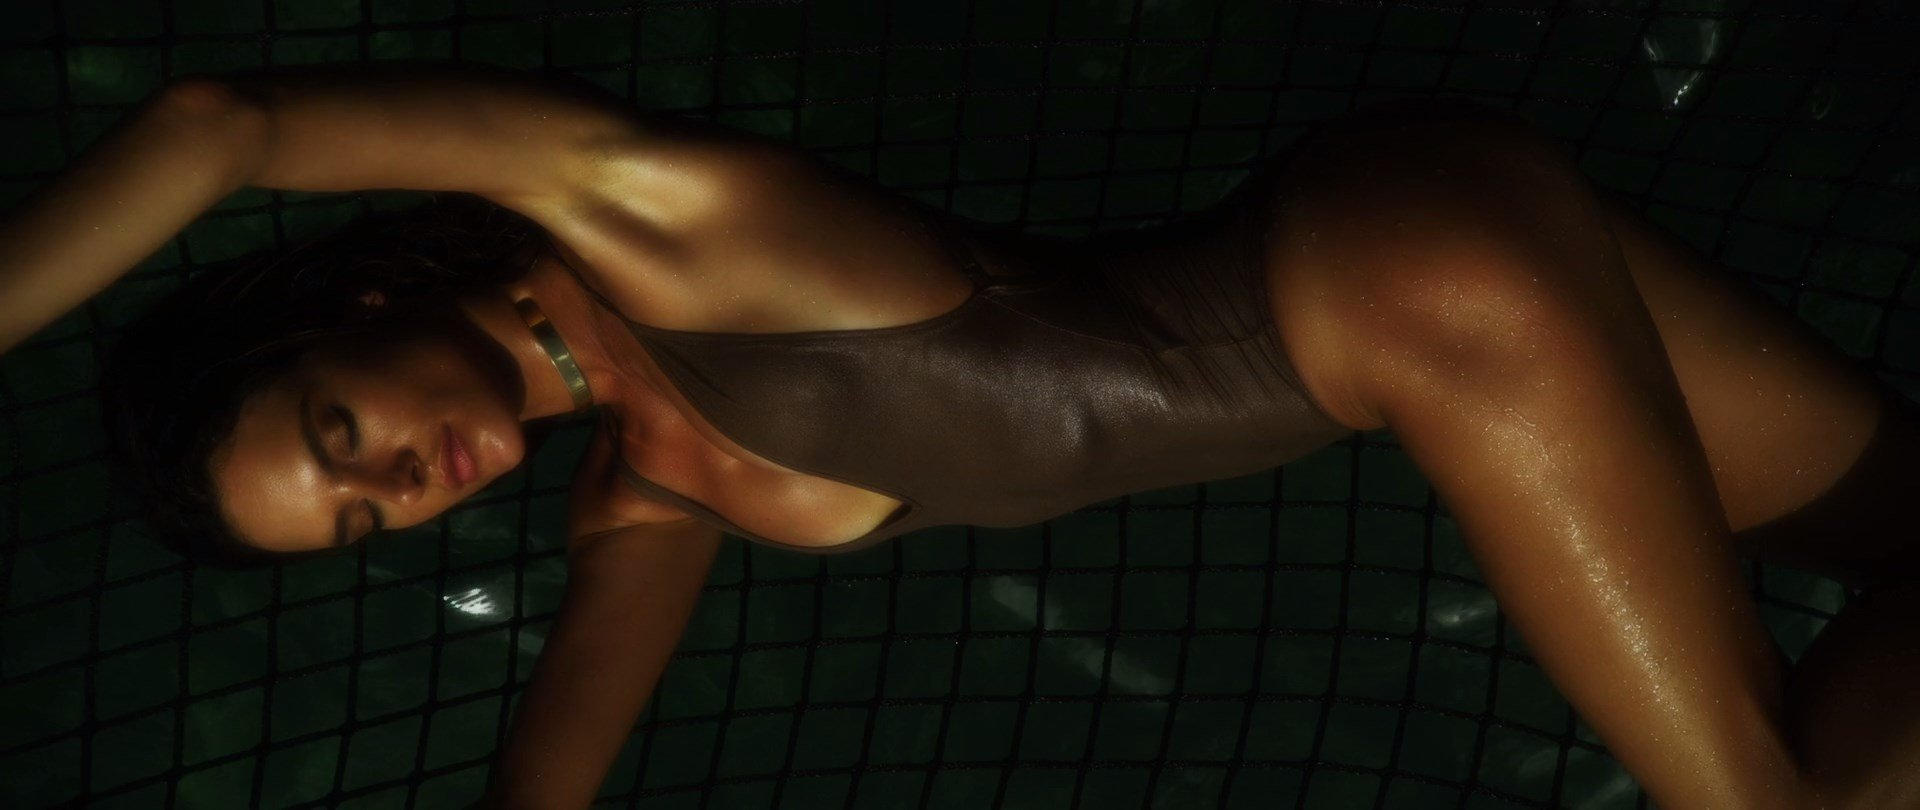 from Lachlan sexy alessandra ambrosio naked